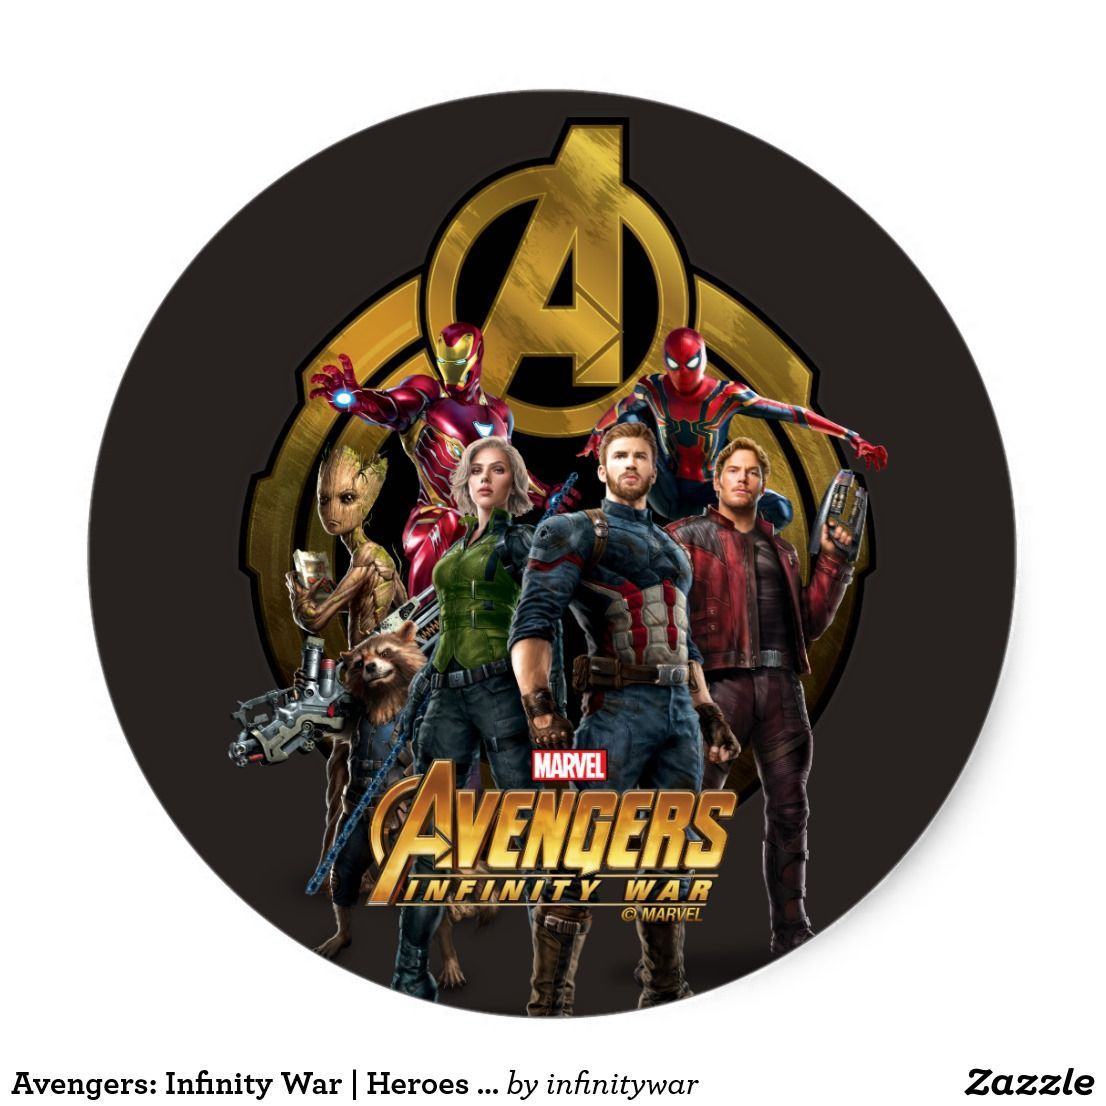 Avengers Infinity War Heroes Avengers Icon Classic Round Sticker Awesome Marvel Infinity War Merchandise To Perso Avengers Marvel Infinity War War Heroes